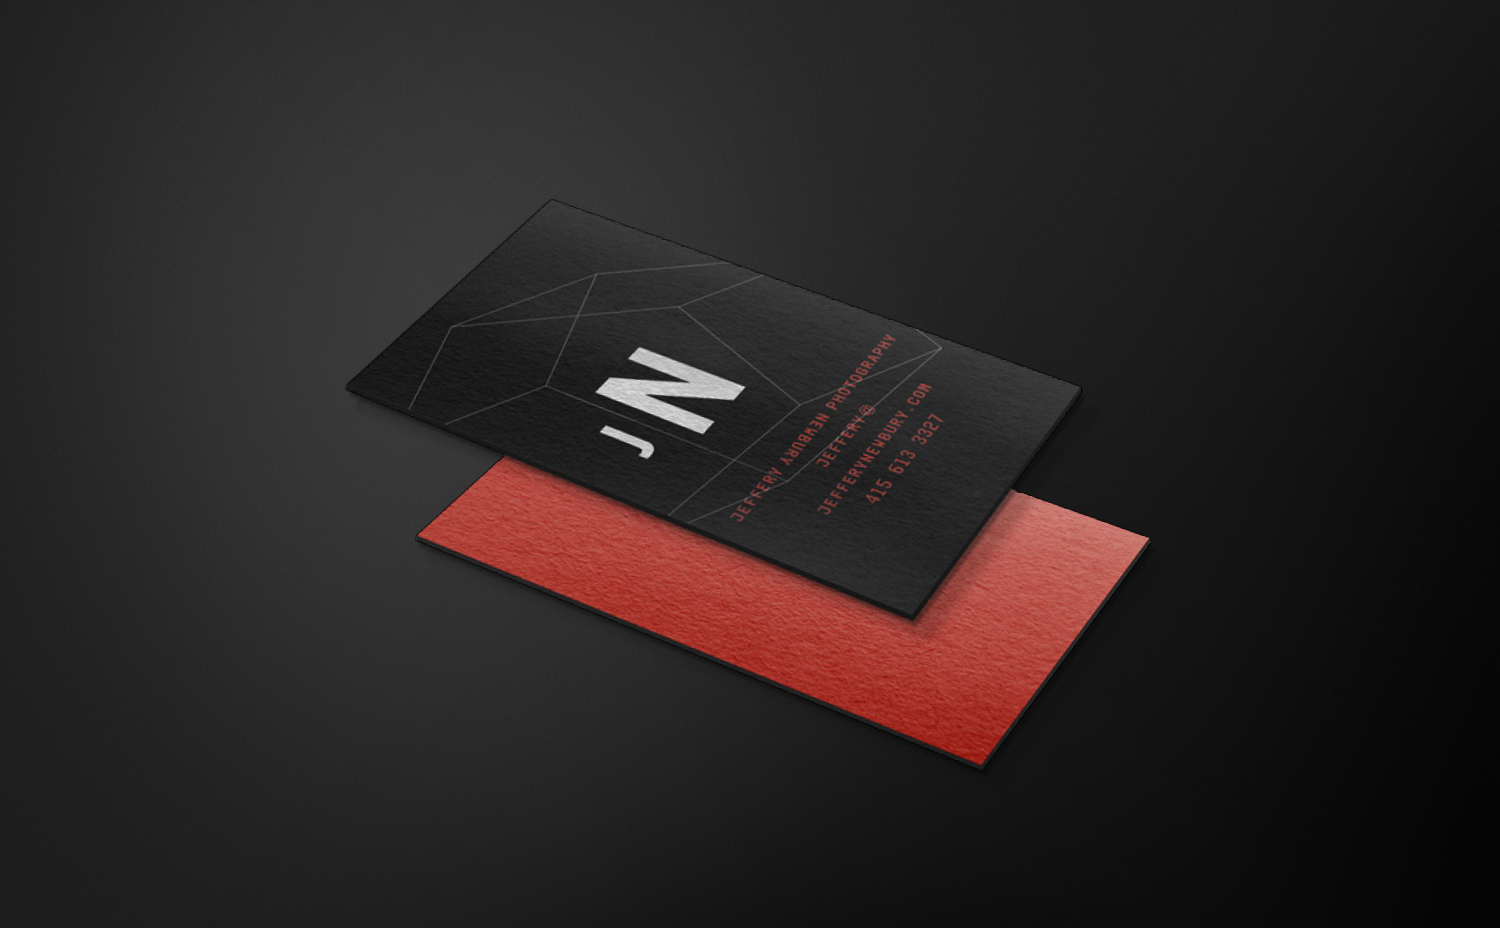 Jeffery Newbury font and back of business cards